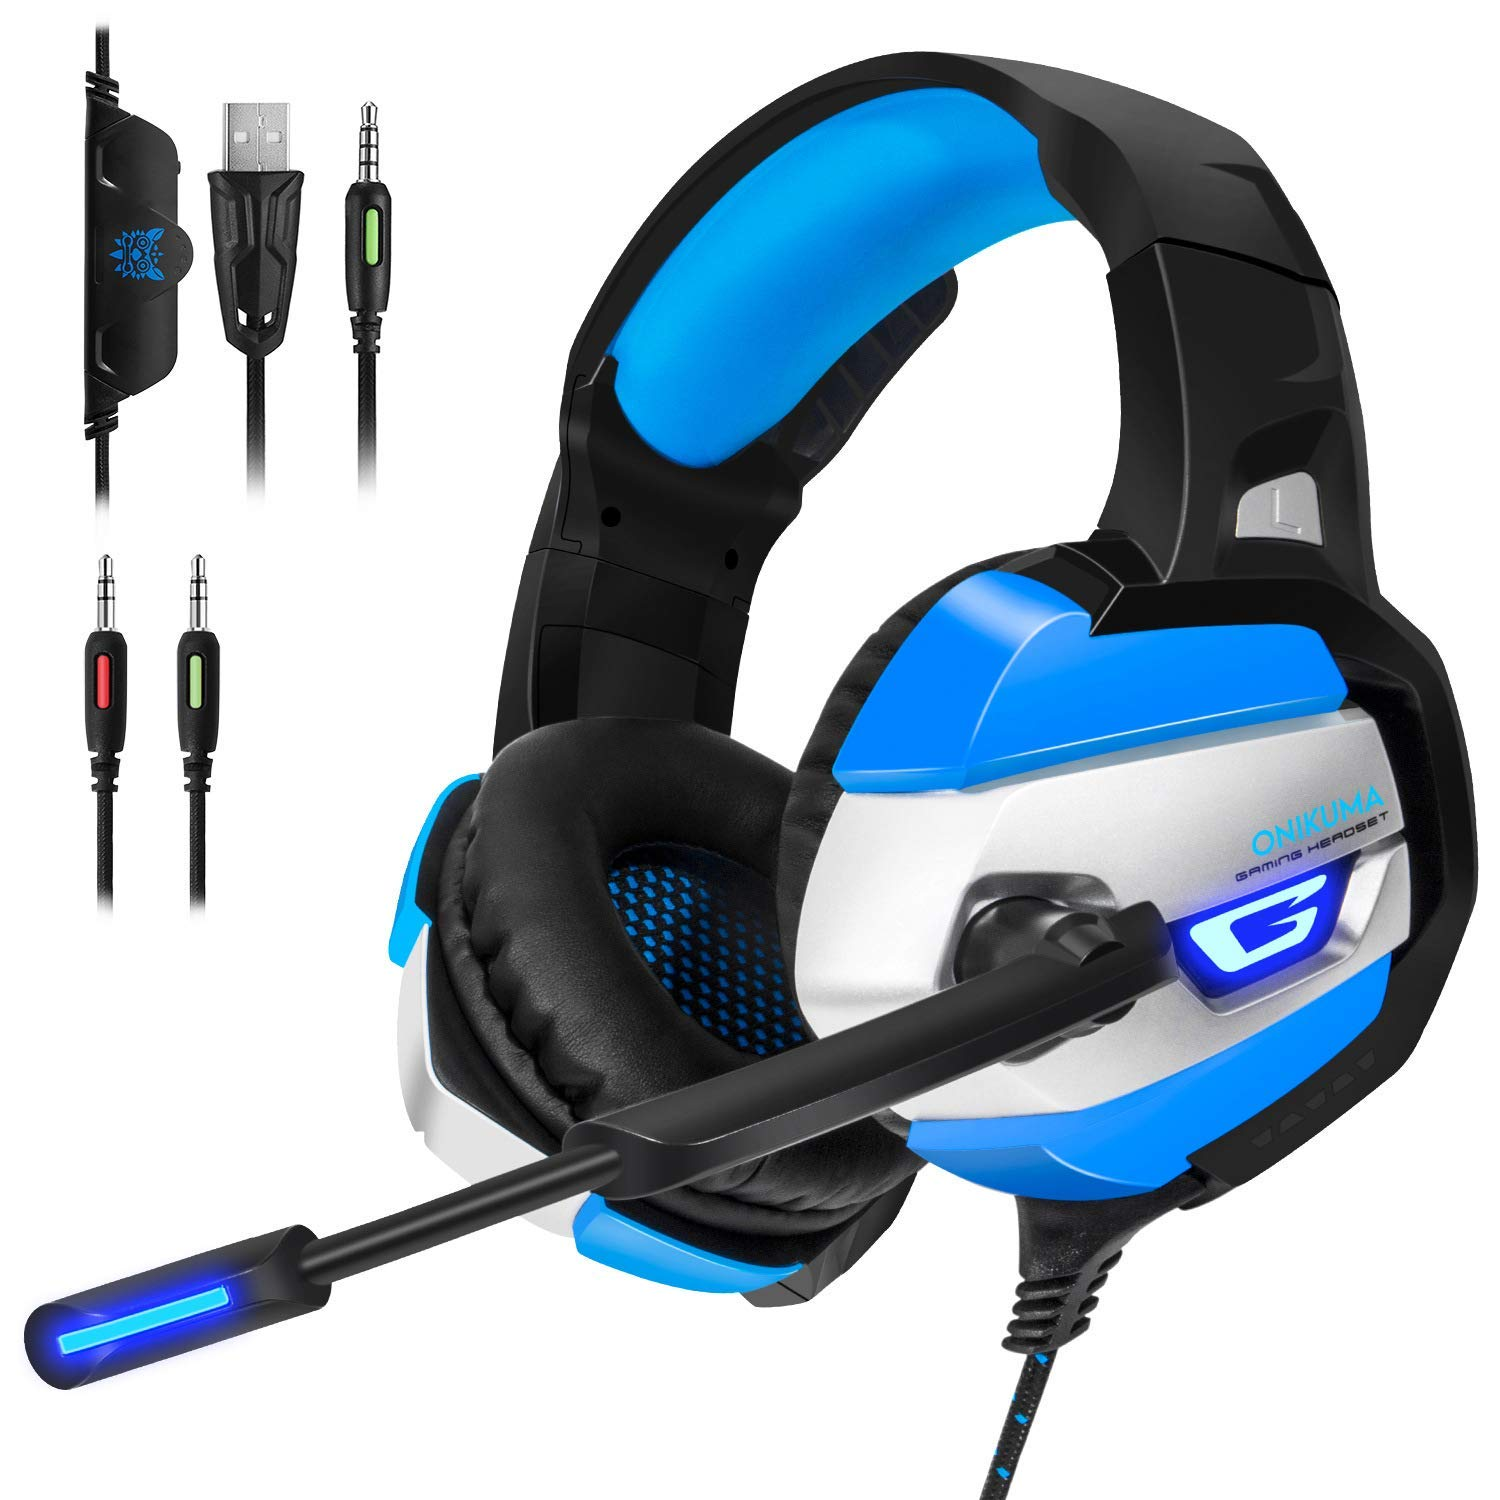 PC Gaming Headset for PS4 Xbox One, K5 Over Ear Gaming Headphones with Mic, Stereo Bass Surround, Noise Reduction, LED Lights and Volume Control for Mac and Nintendo Switch Games